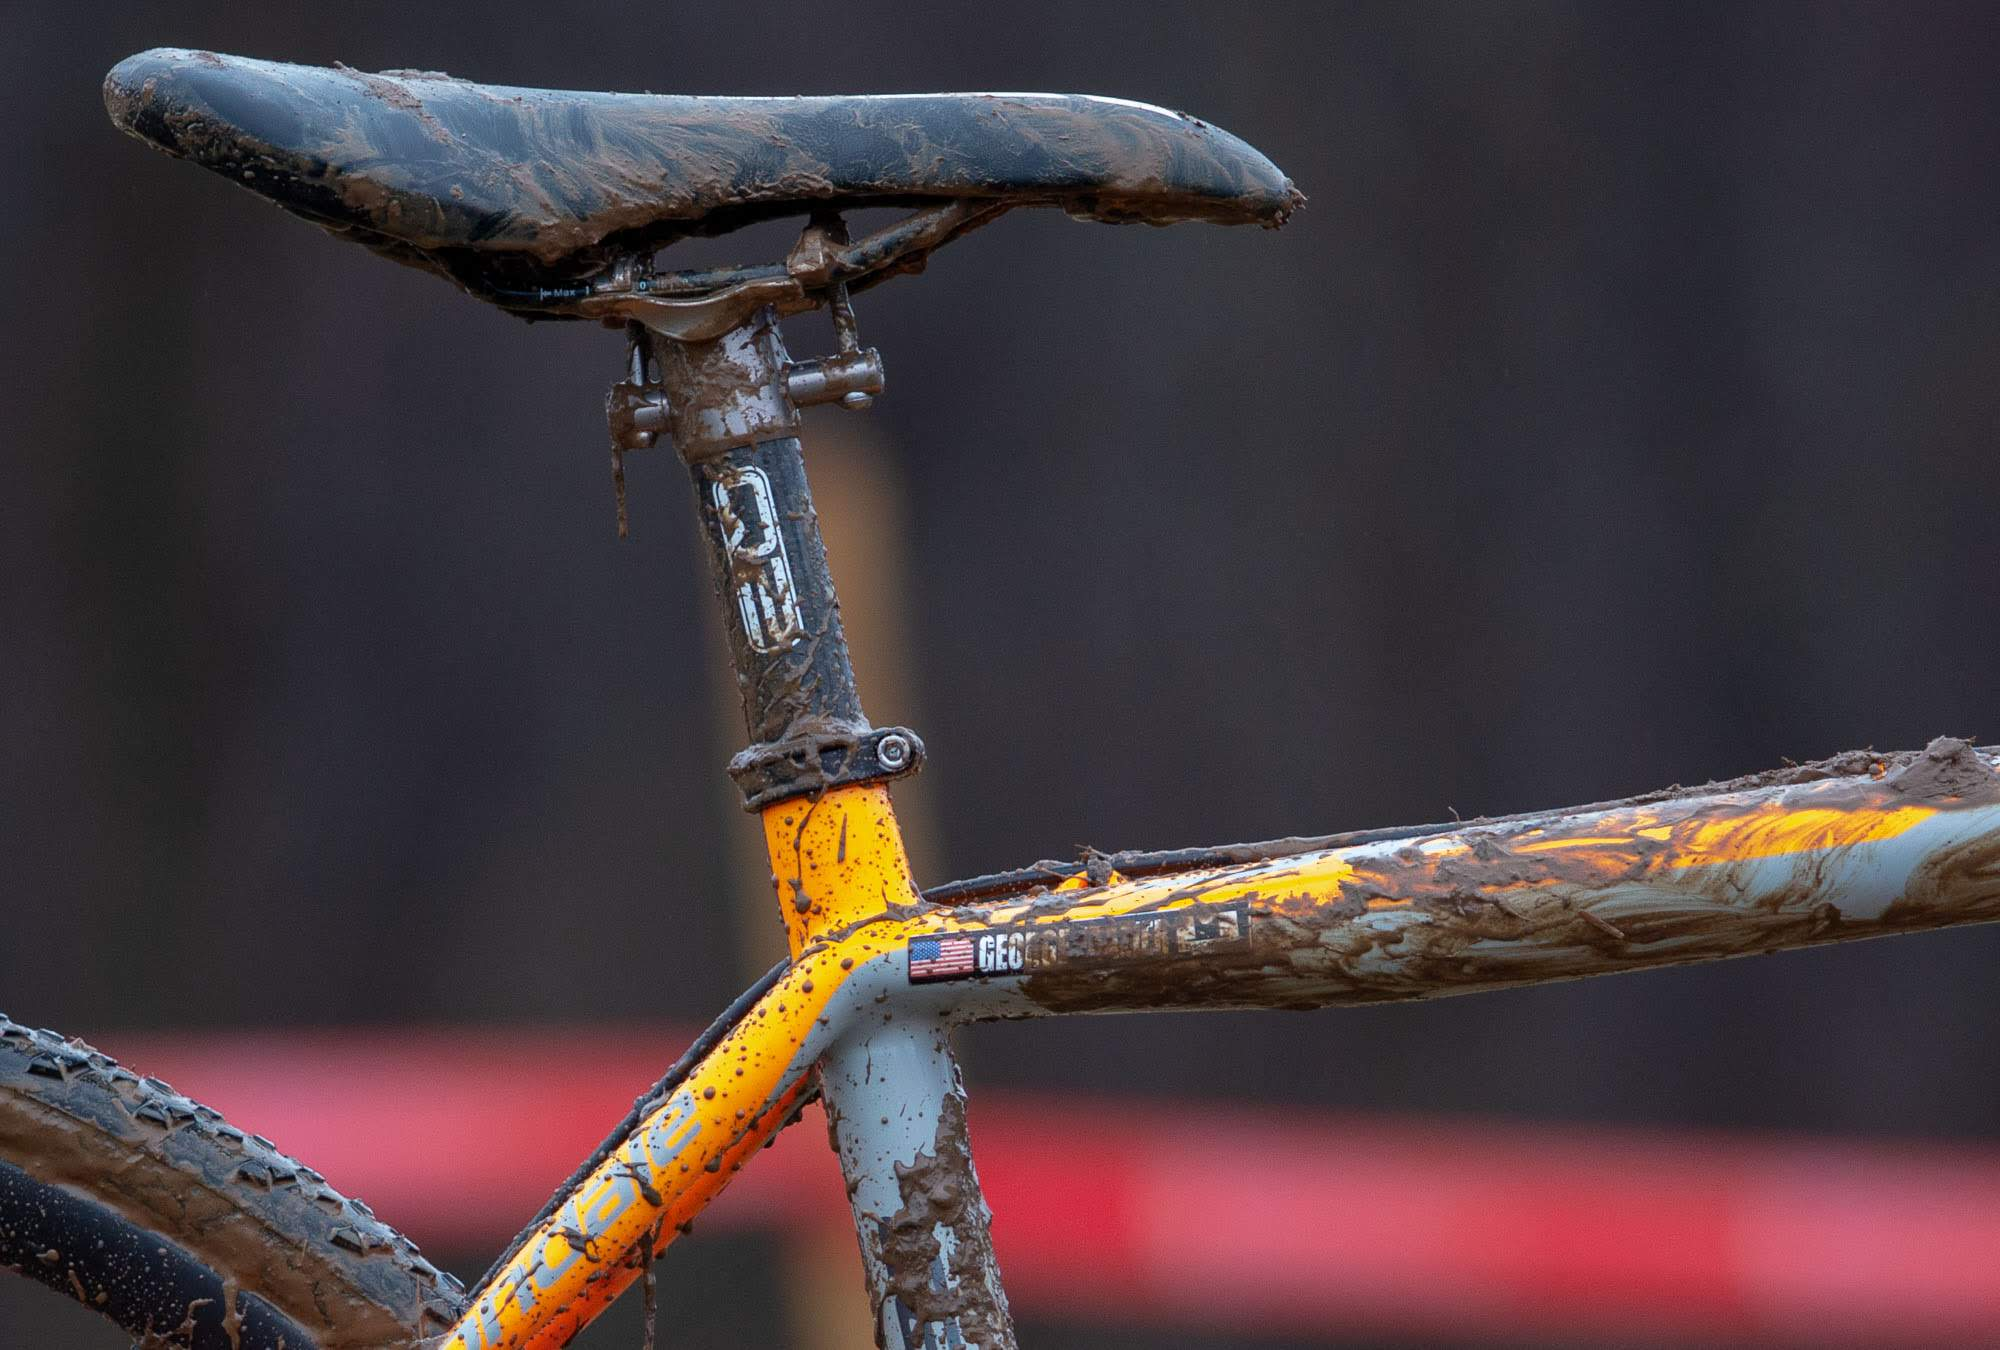 Frazier's Q2 carbon seatpost has no setback to the seat clamp and